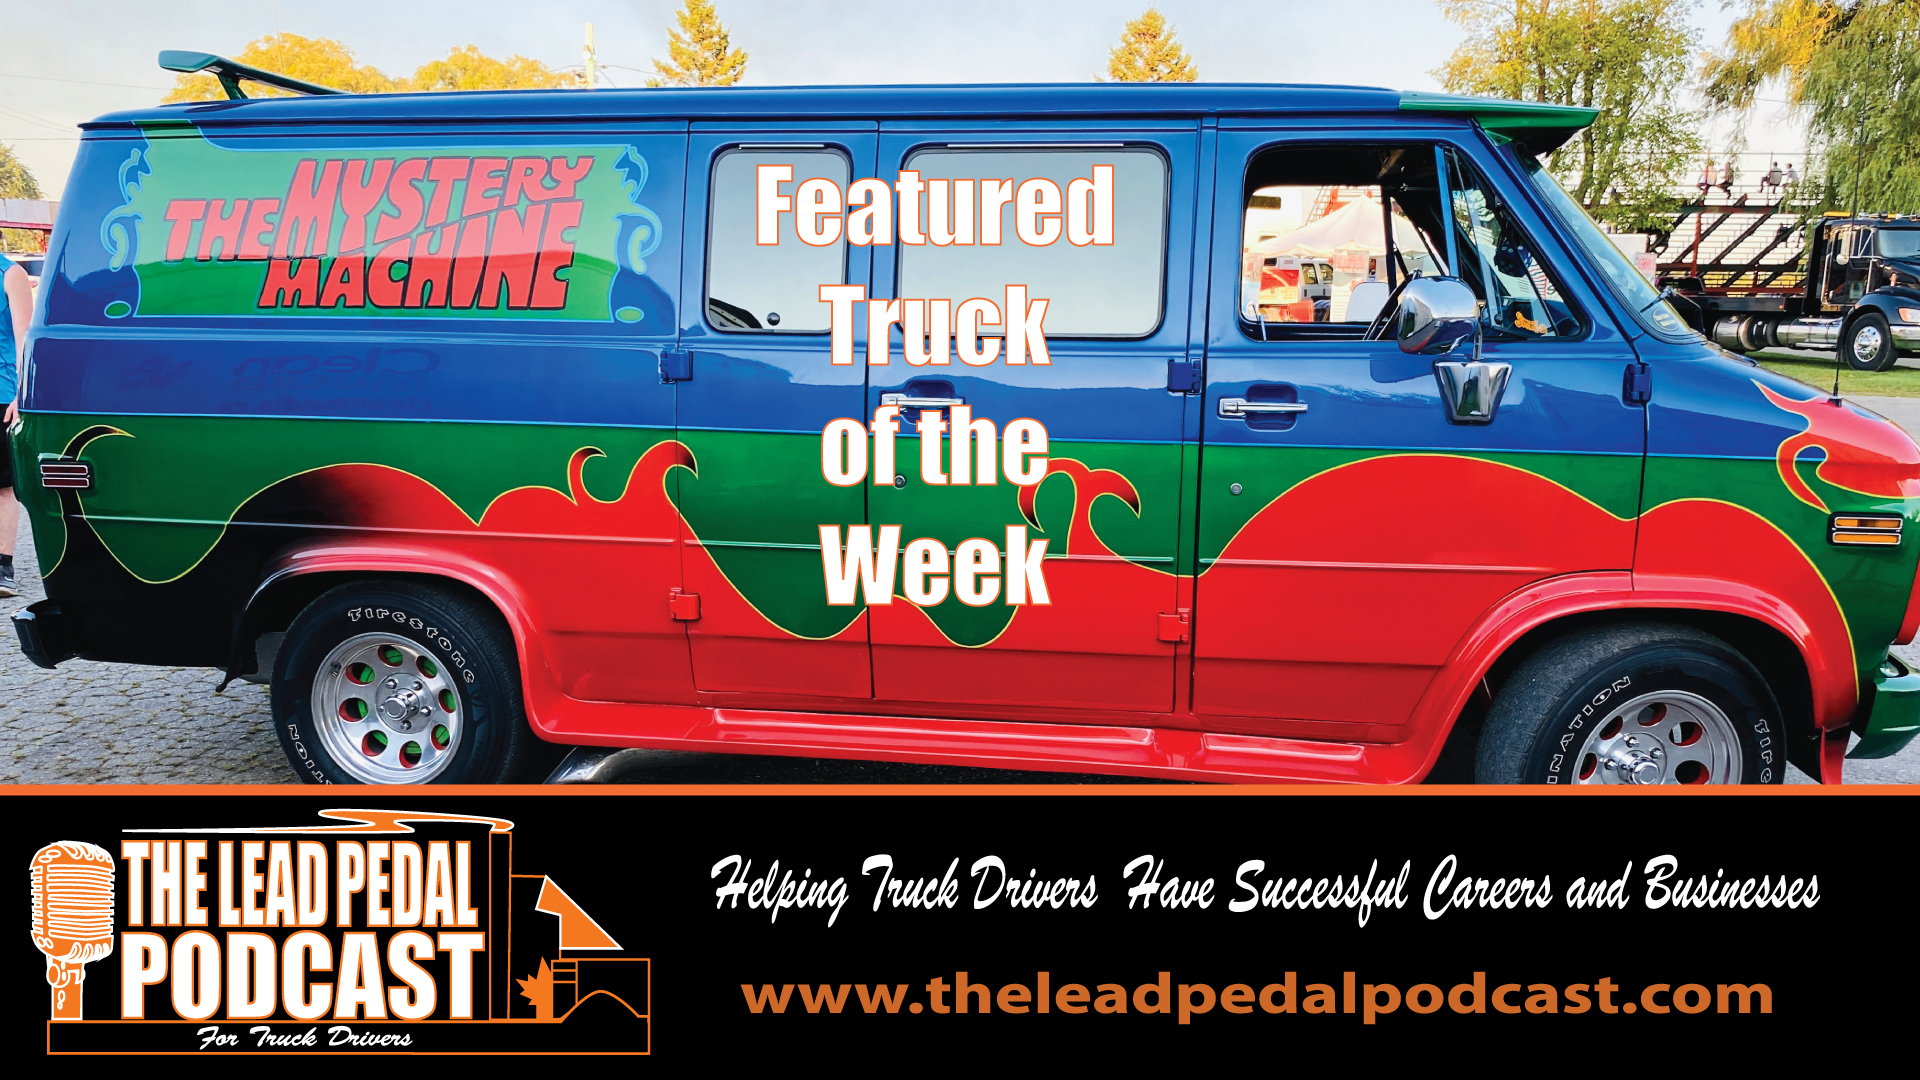 LP609 Featured Truck of the Week - The Mystery Machine